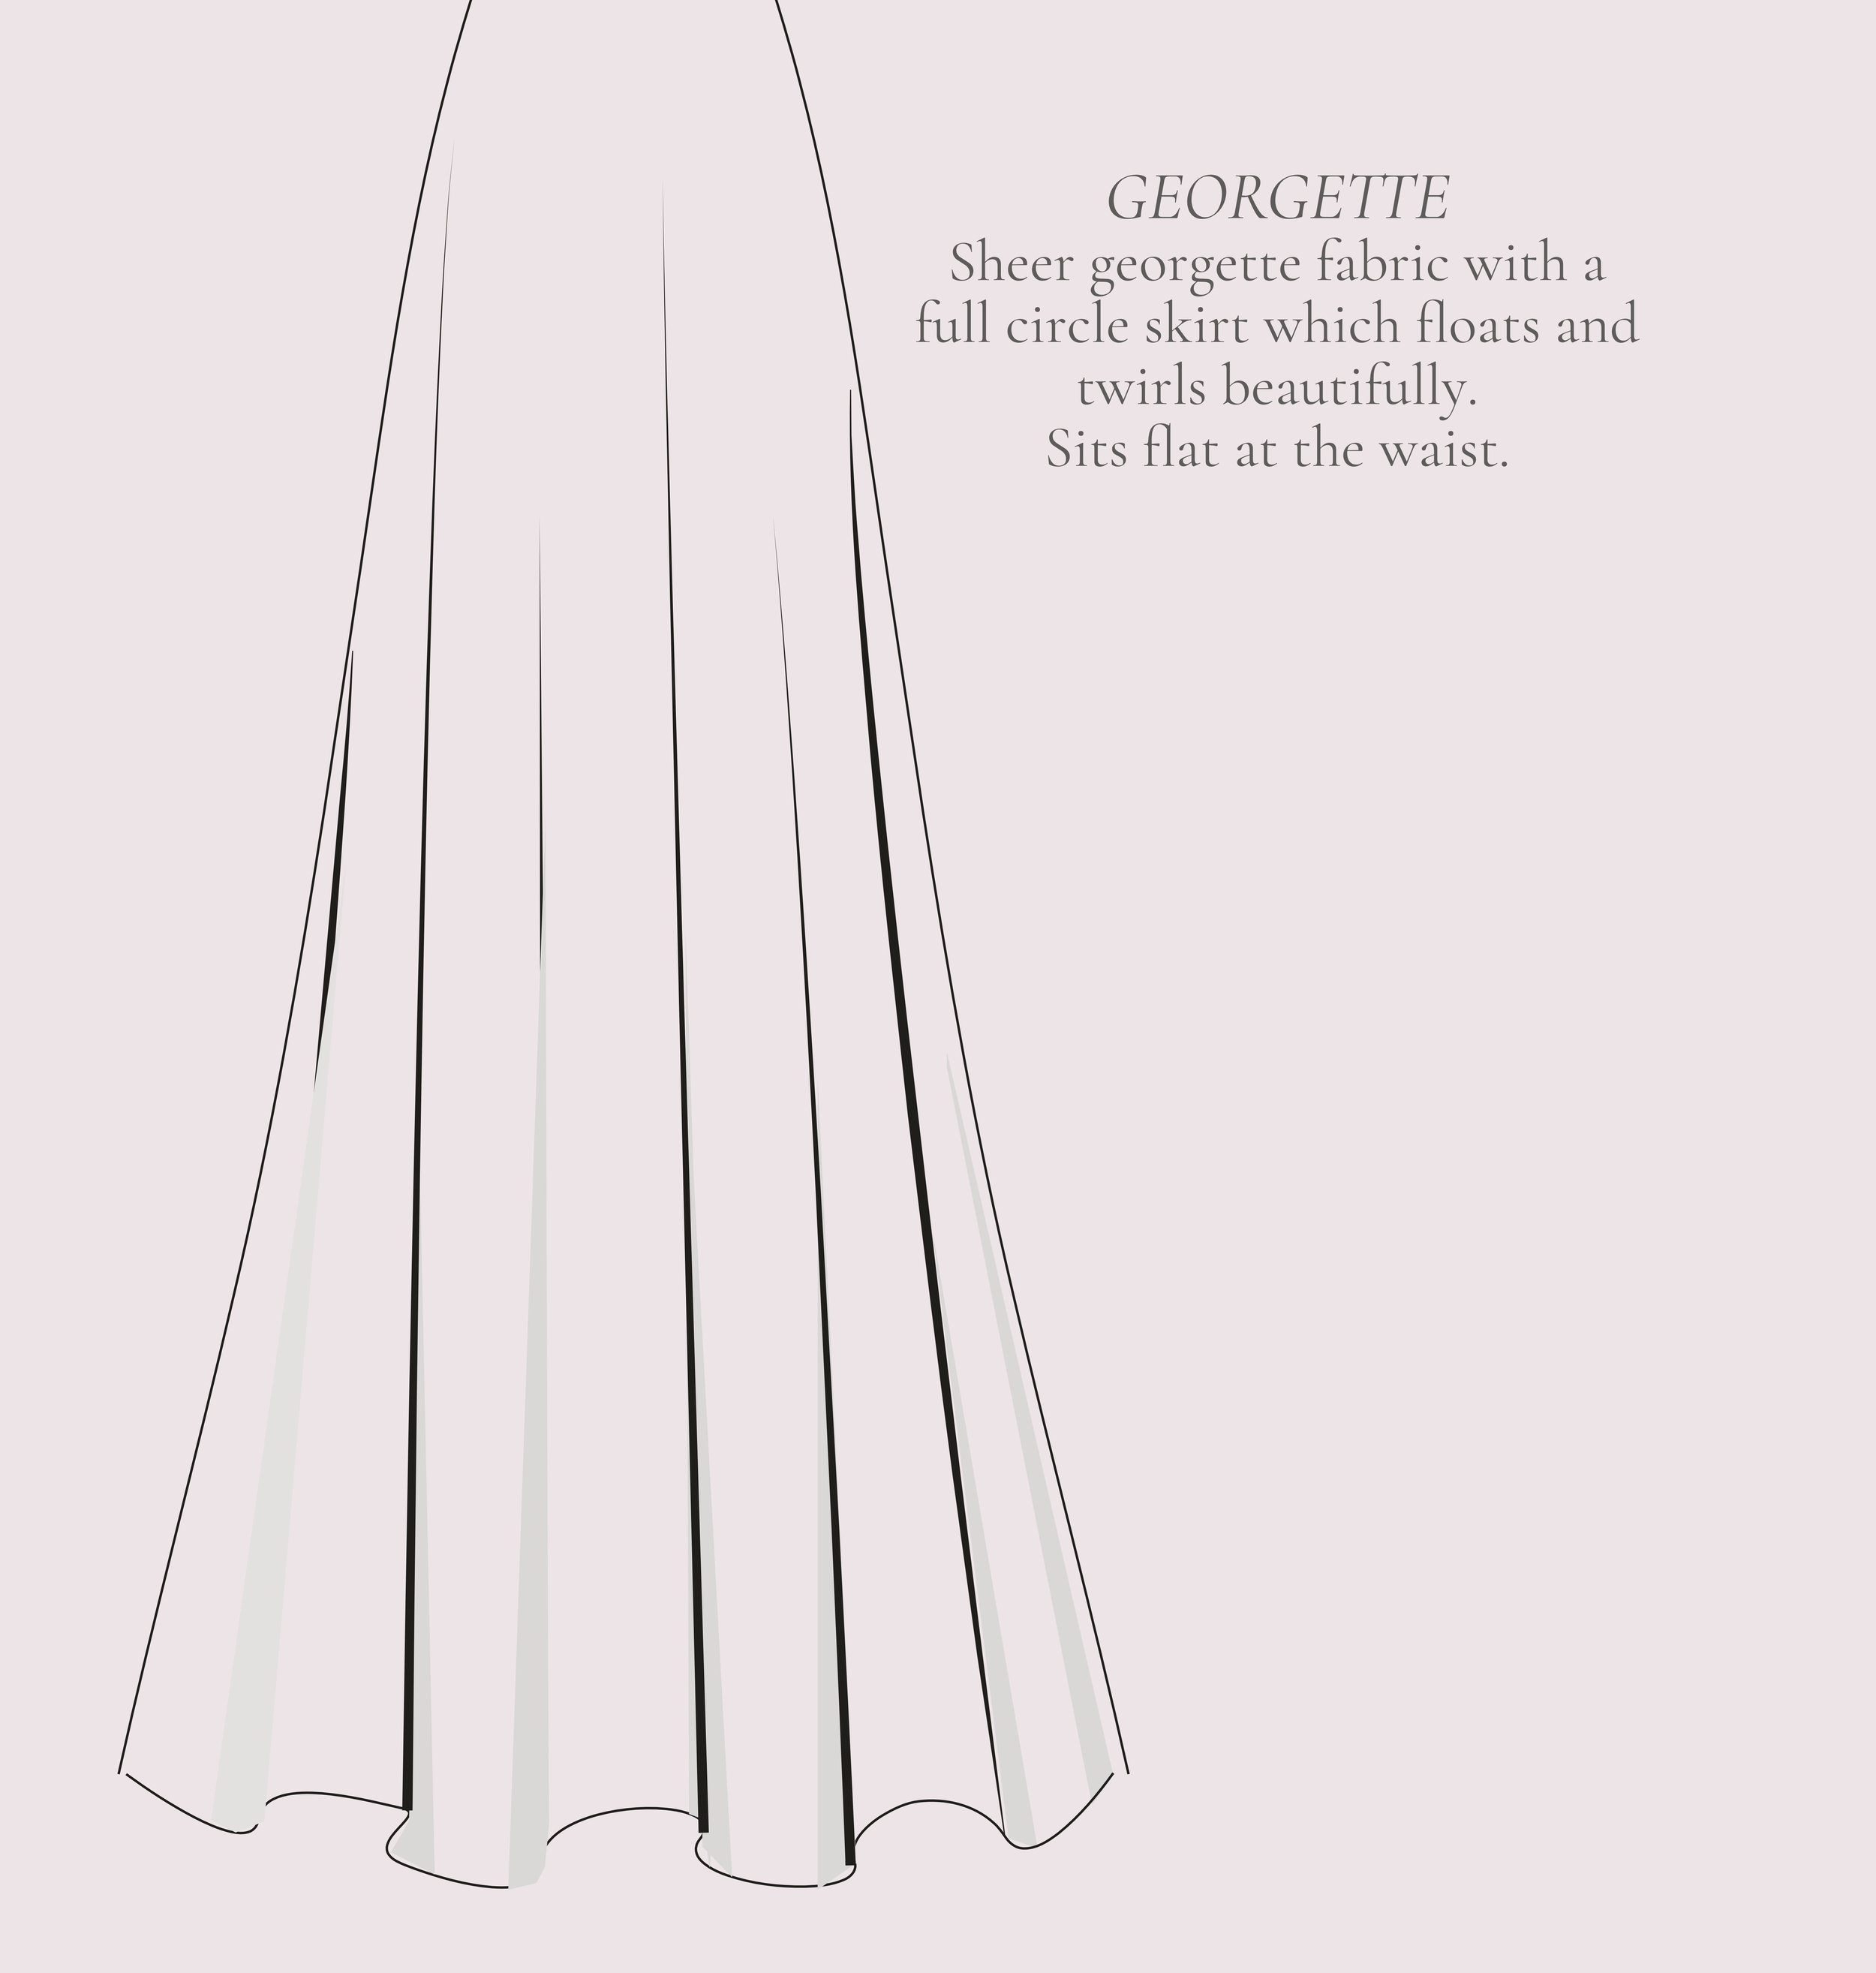 Motee-georgette-skirt@2x.jpg